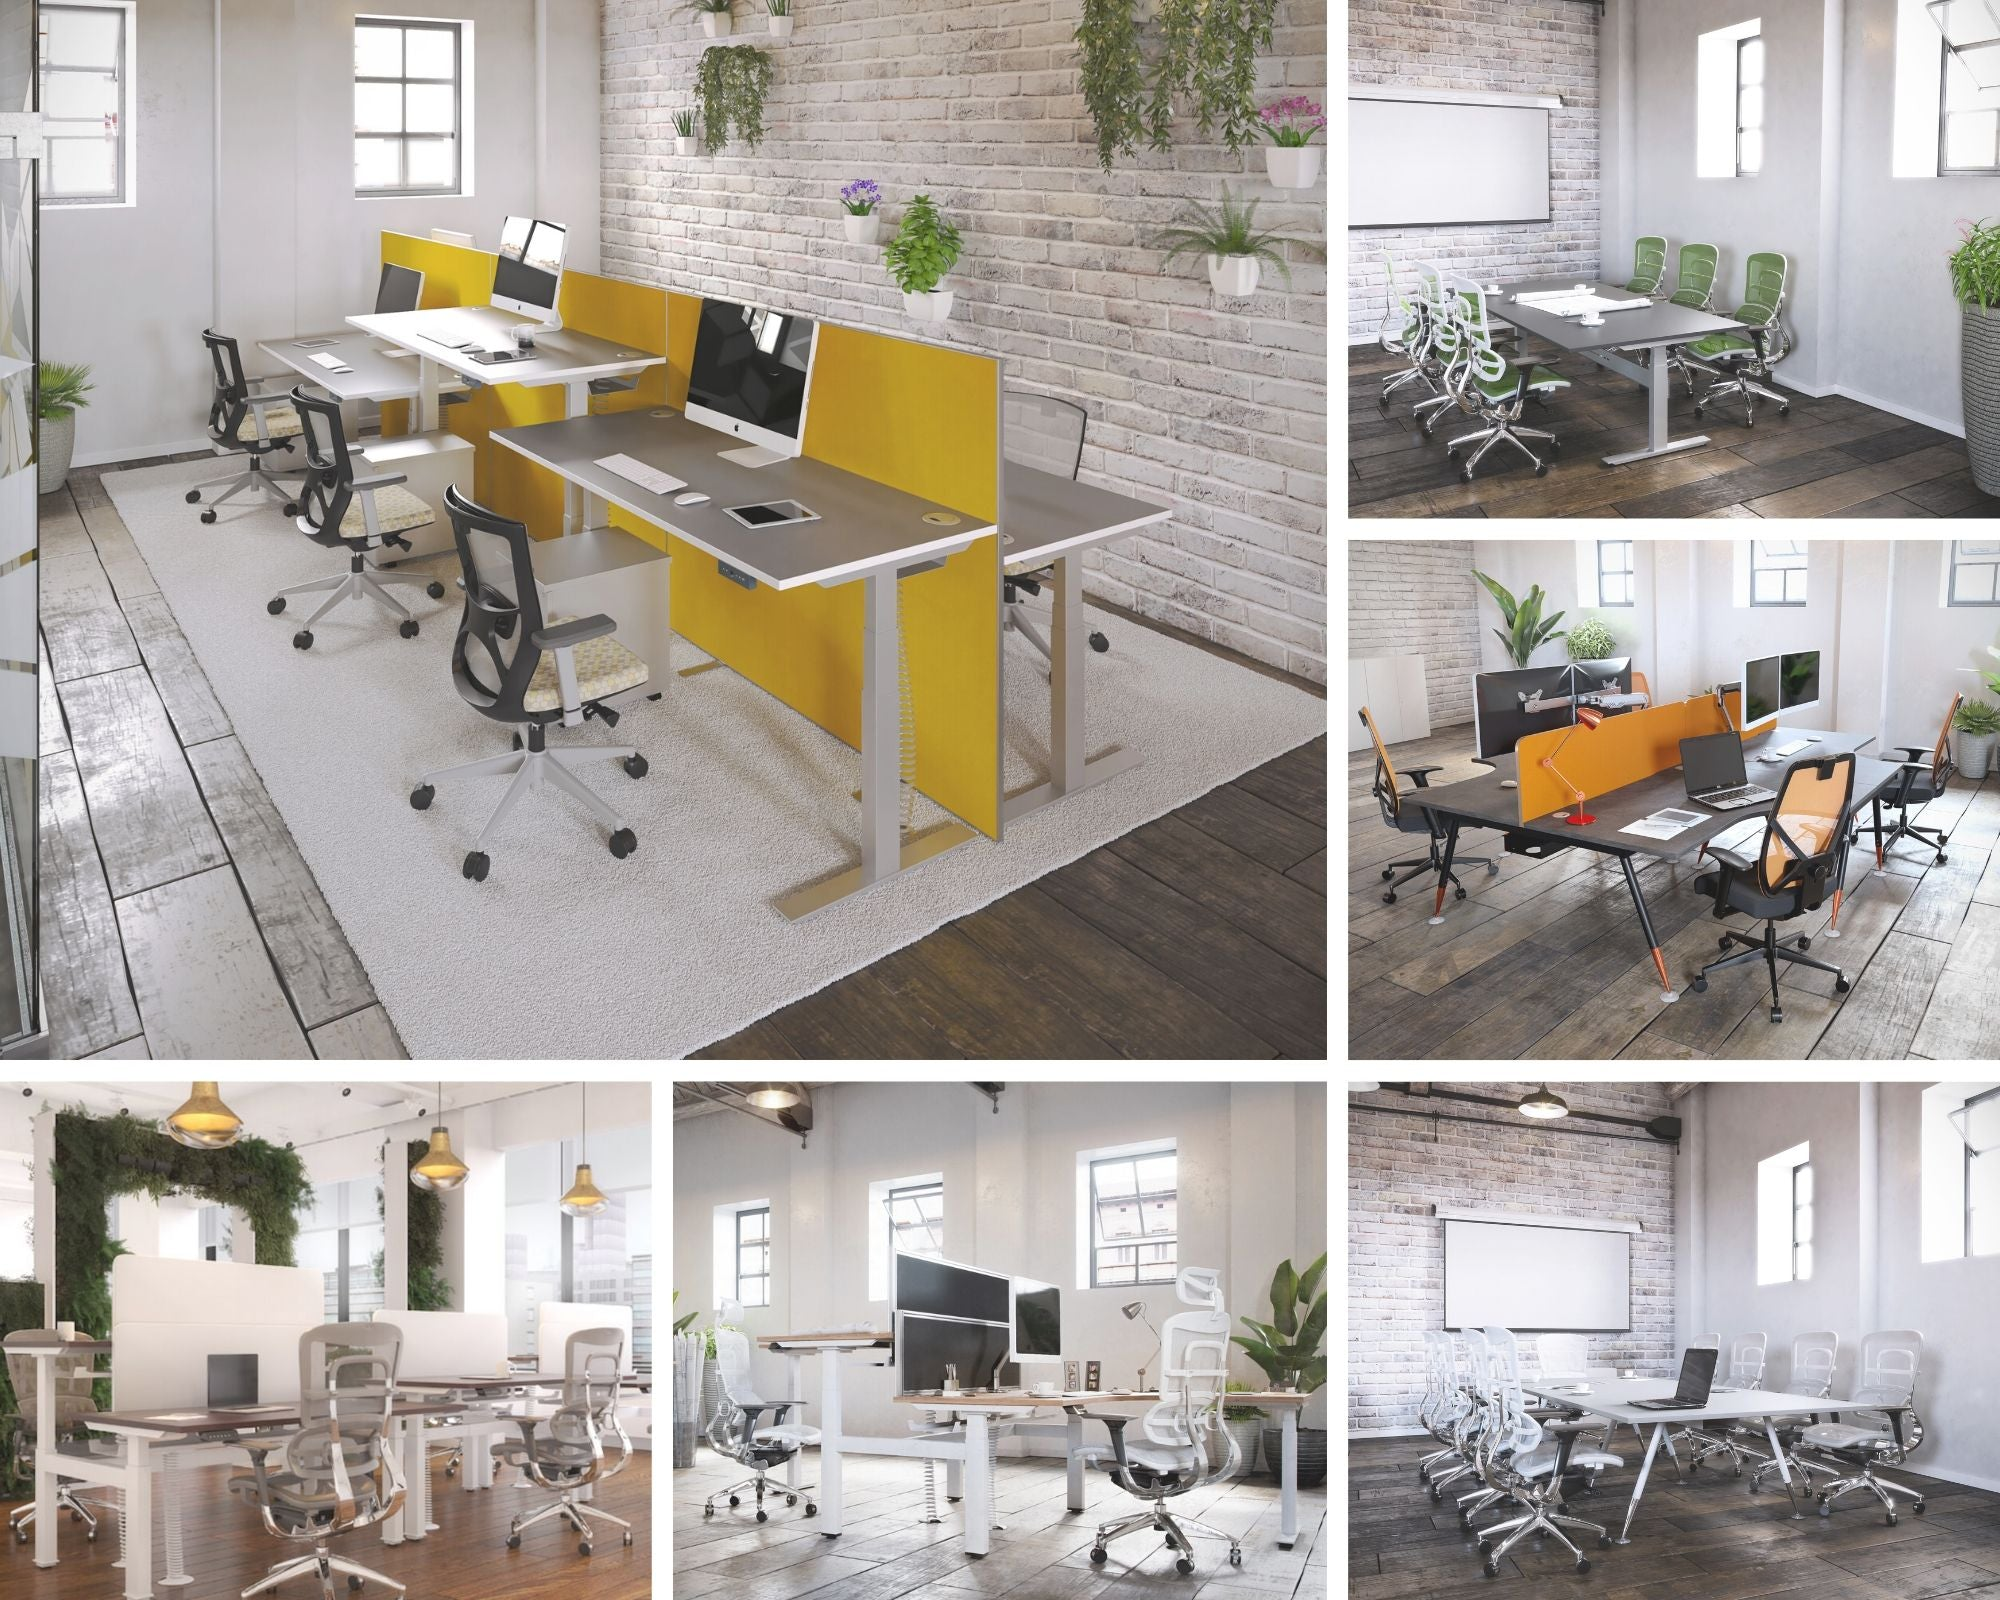 ergonomic room sets for offices